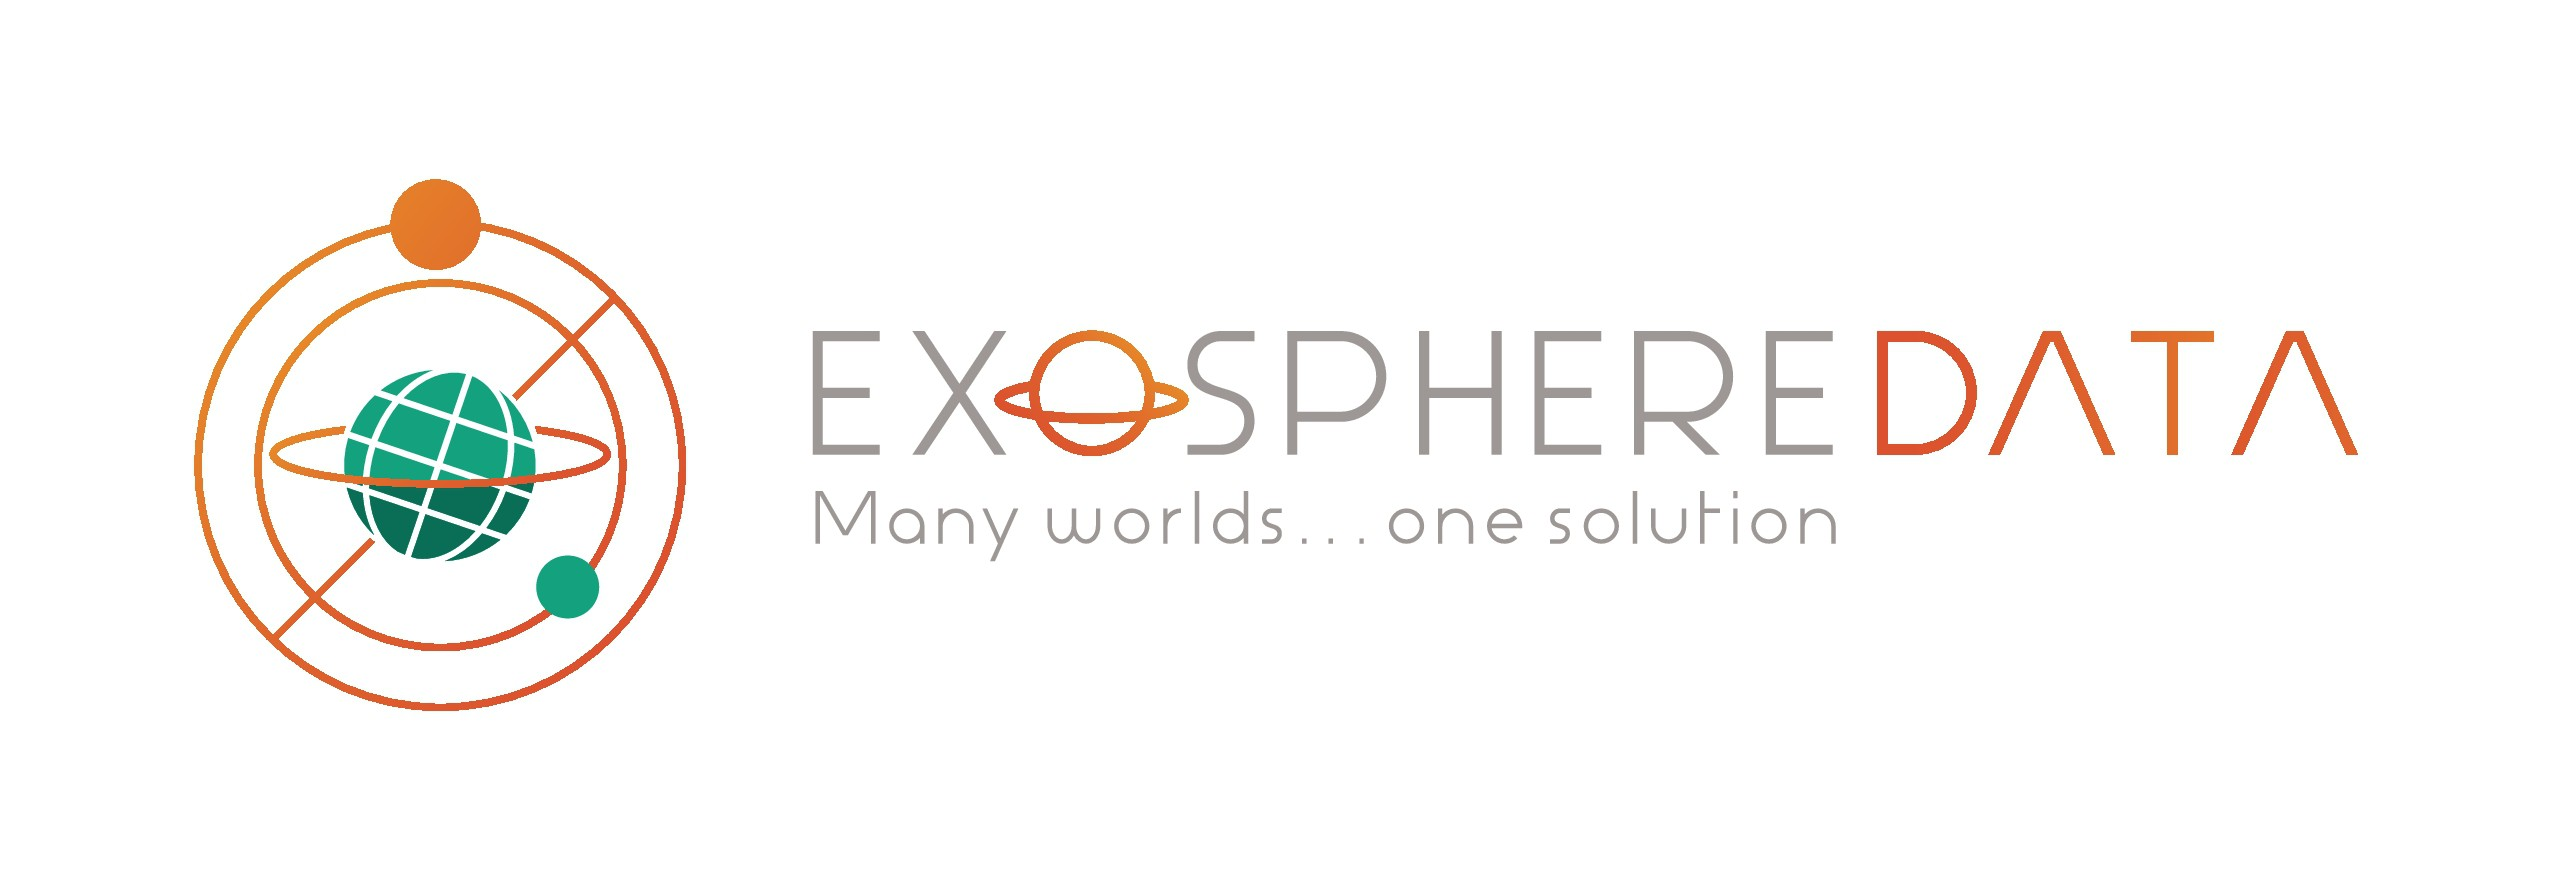 'Many worlds... one solution for the cloud' brand design for Exosphere Data, Inc